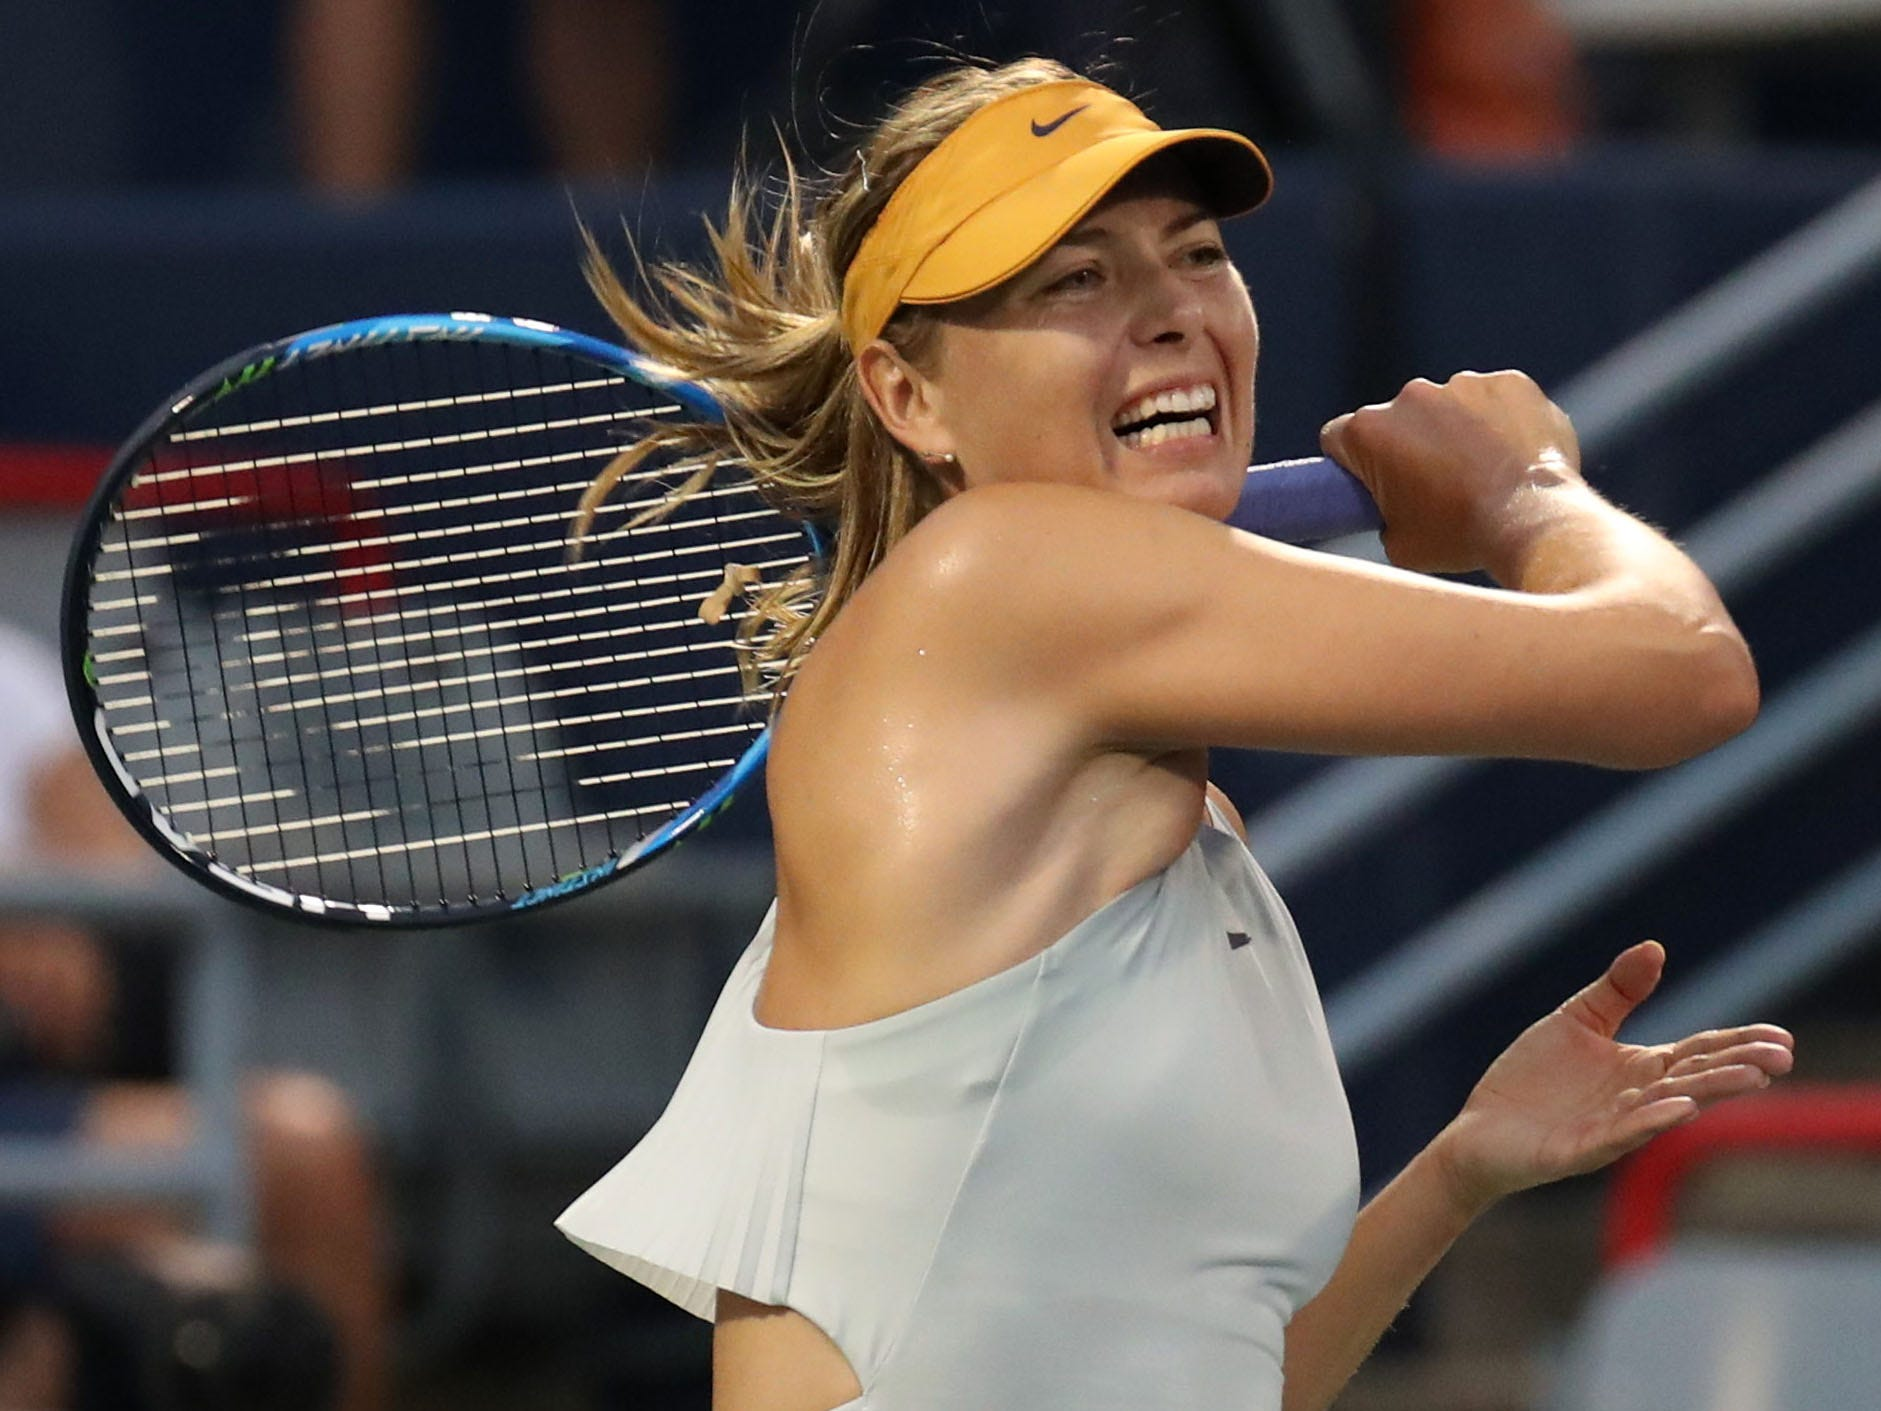 Maria Sharapova, 2-19 vs. Serena. Rival, you say? Can it truly be a rivalry if it's this one-sided. It seems clear Williams gets motivated to face Sharapova.